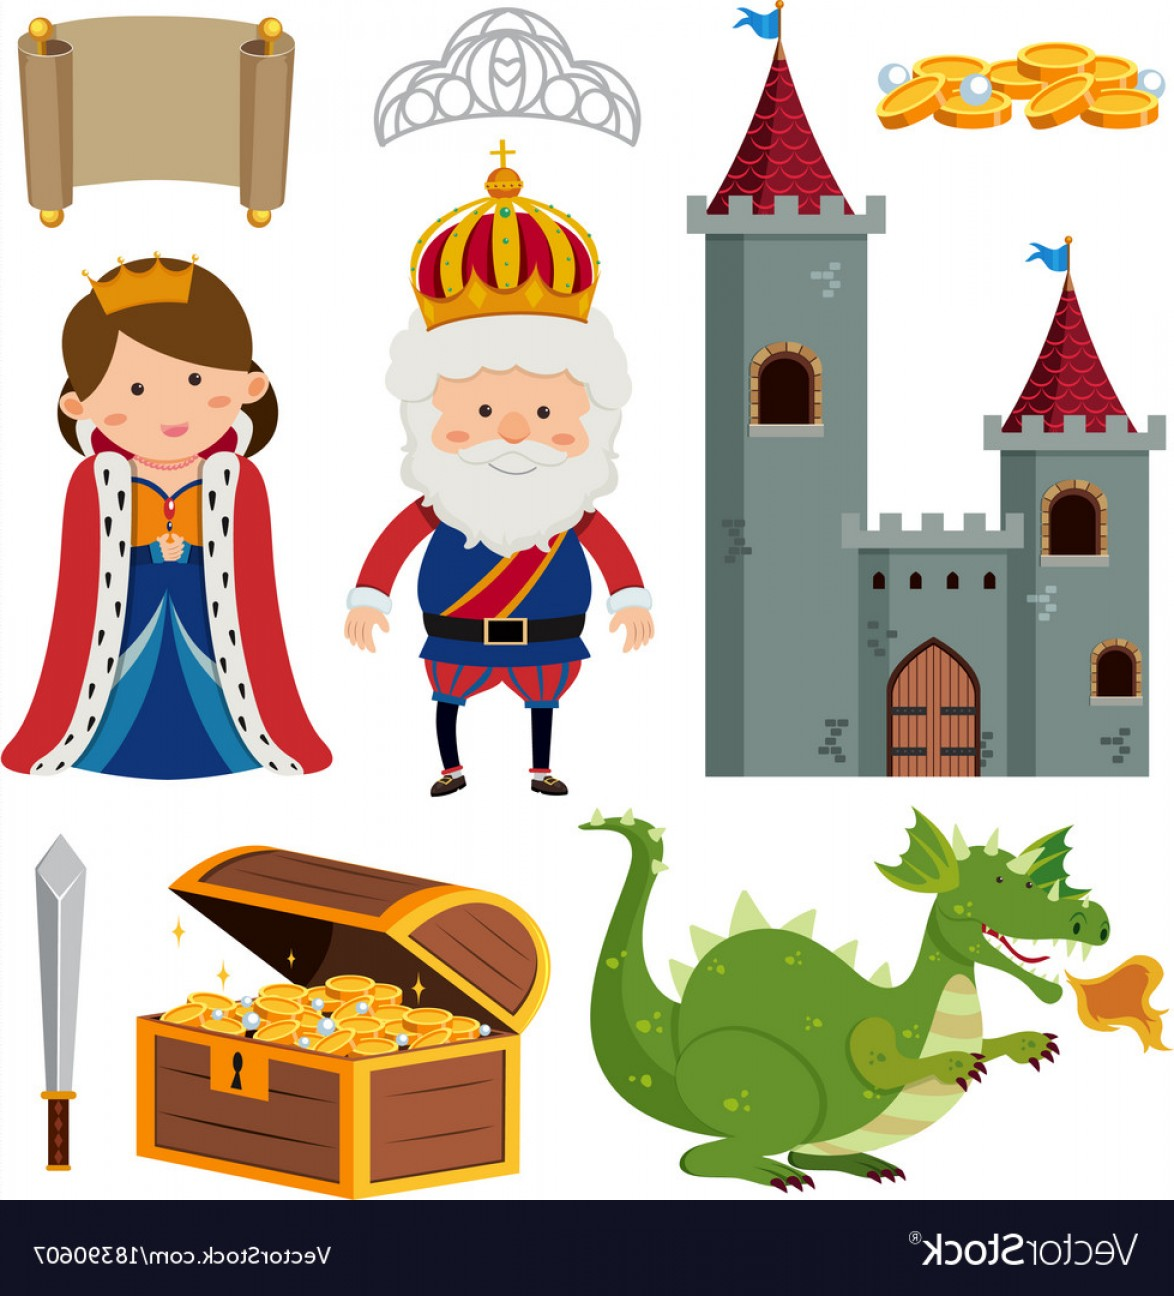 King And Queen Vector: King And Queen At The Castle Vector